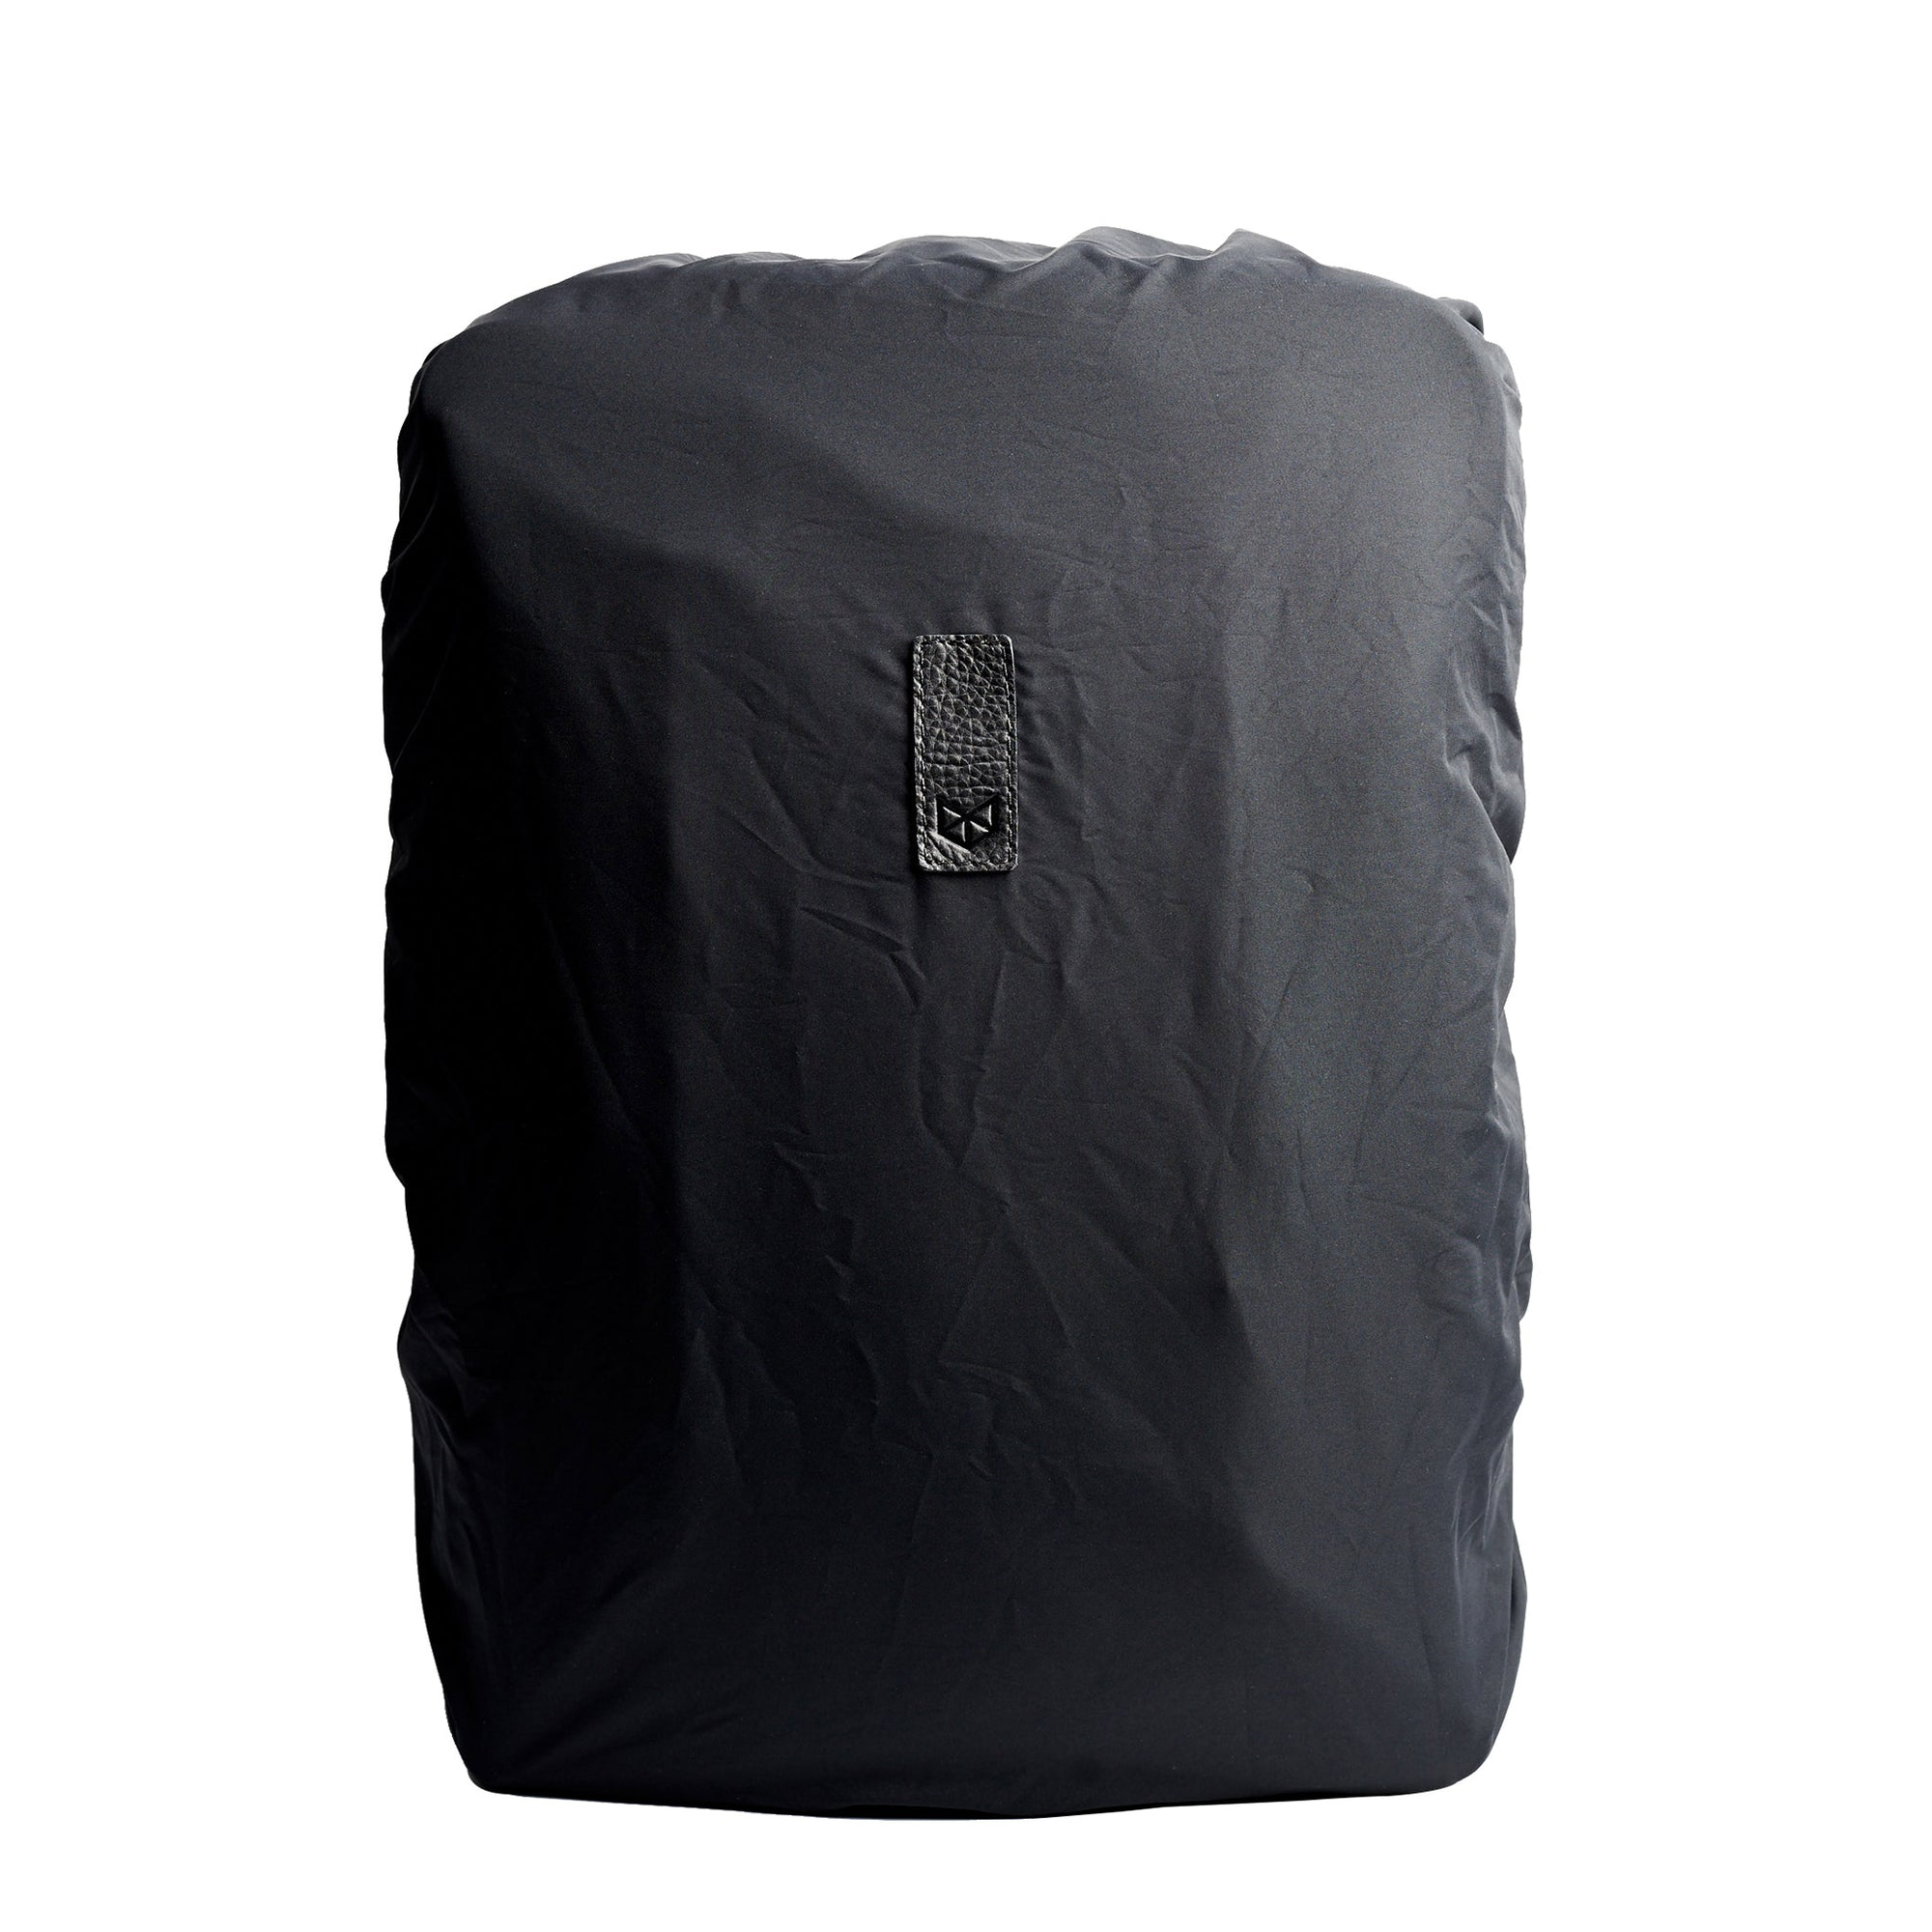 Black rain cover for leather backpacks. Mens backpacks accessories